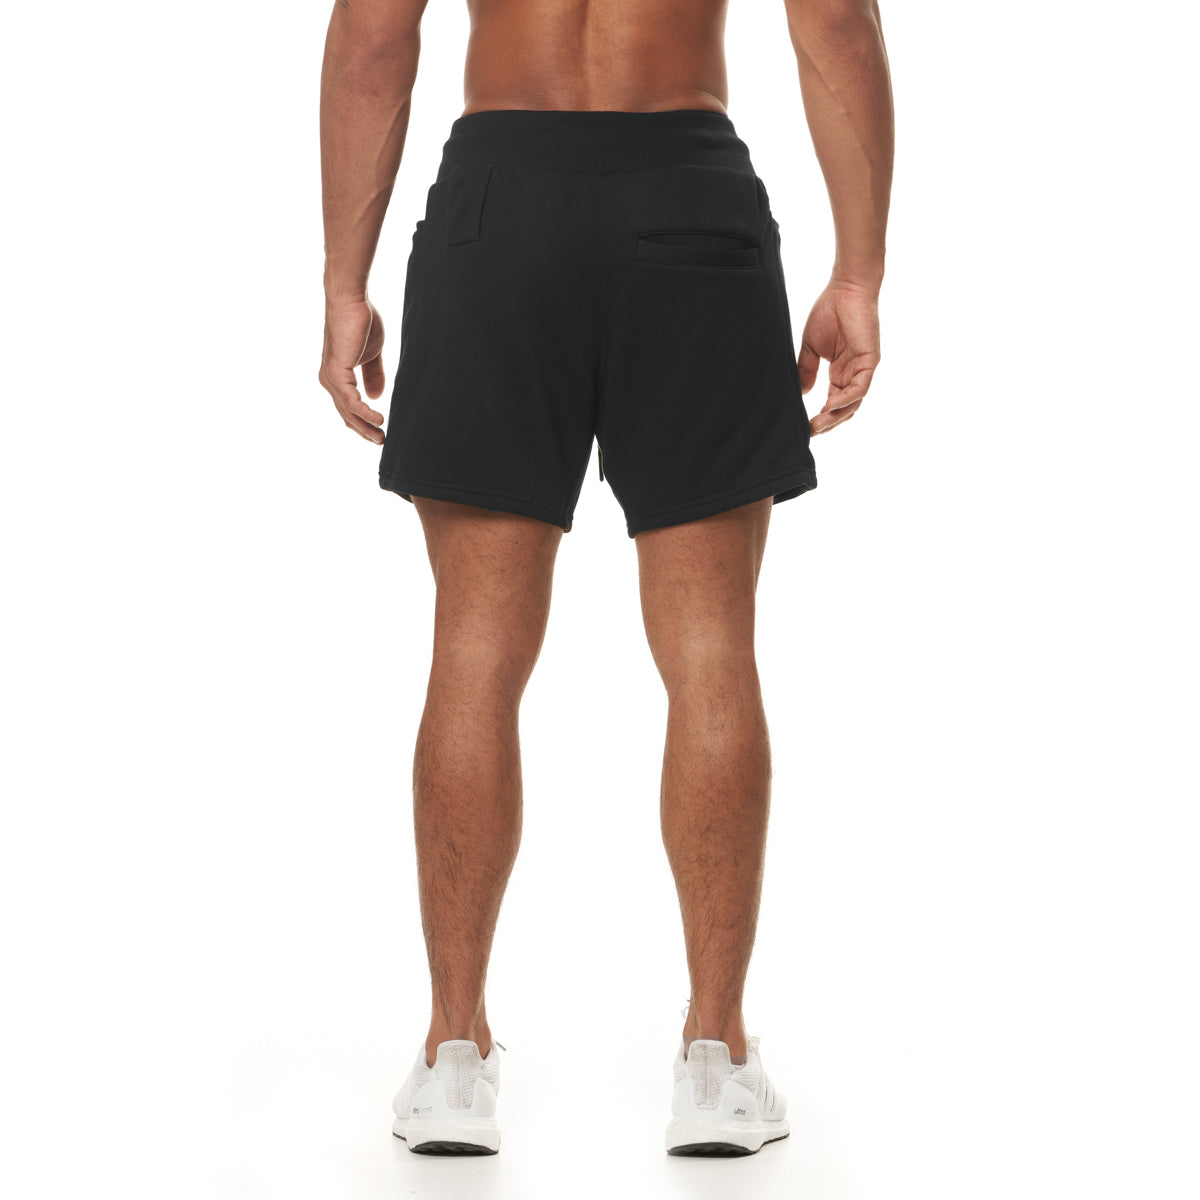 0398. French Terry Sweat Shorts - Black